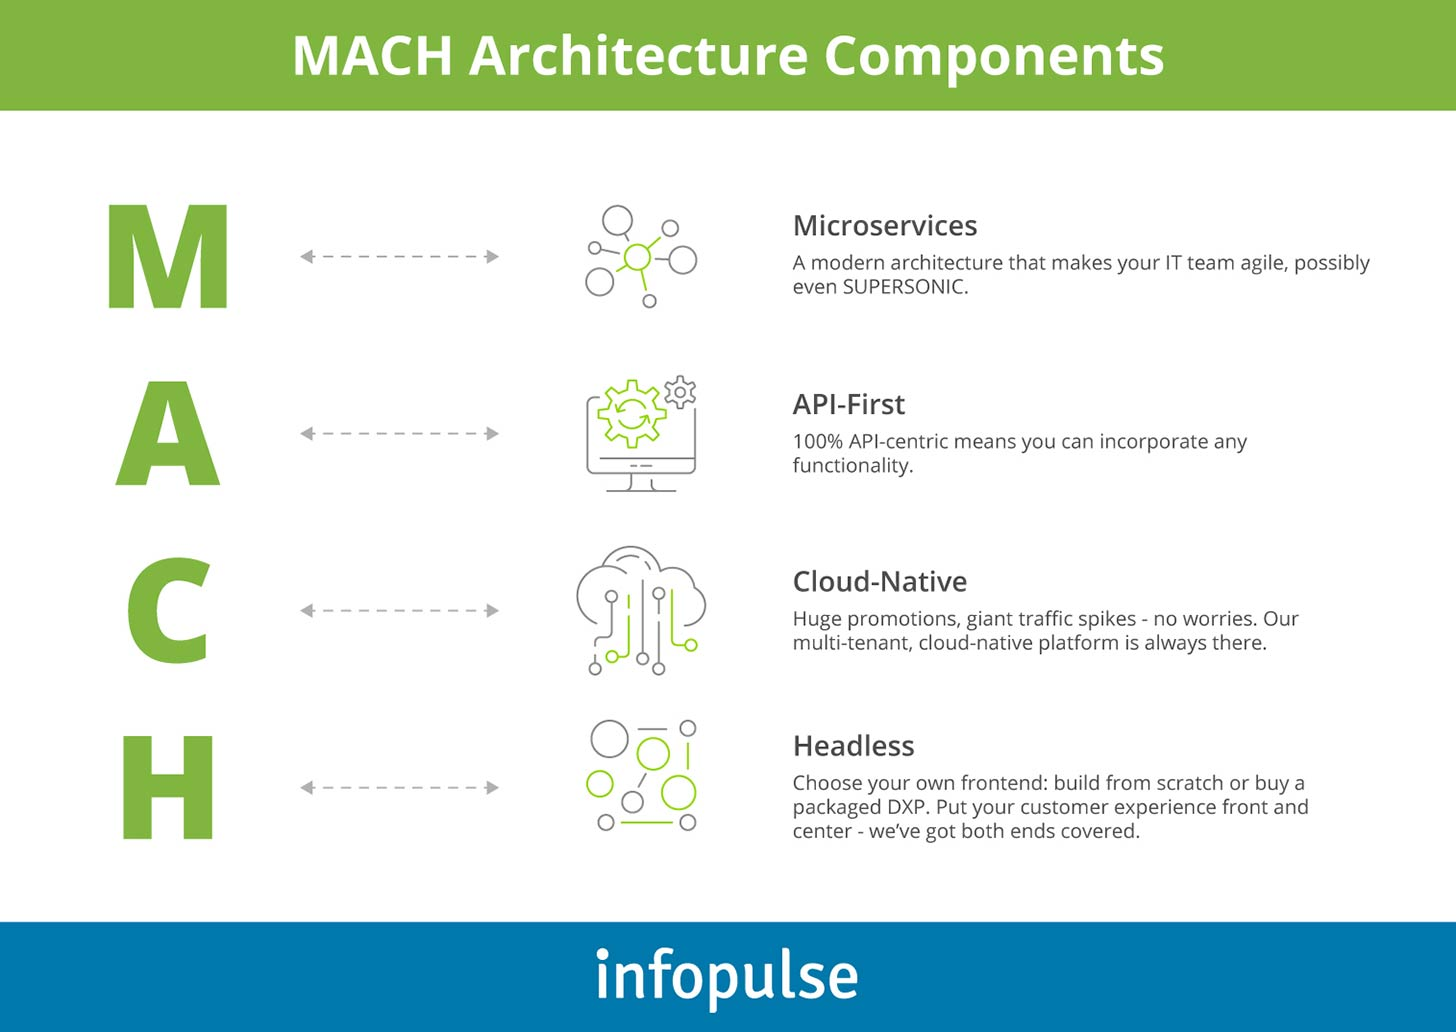 MACH Architecture Components - Infopulse - 1